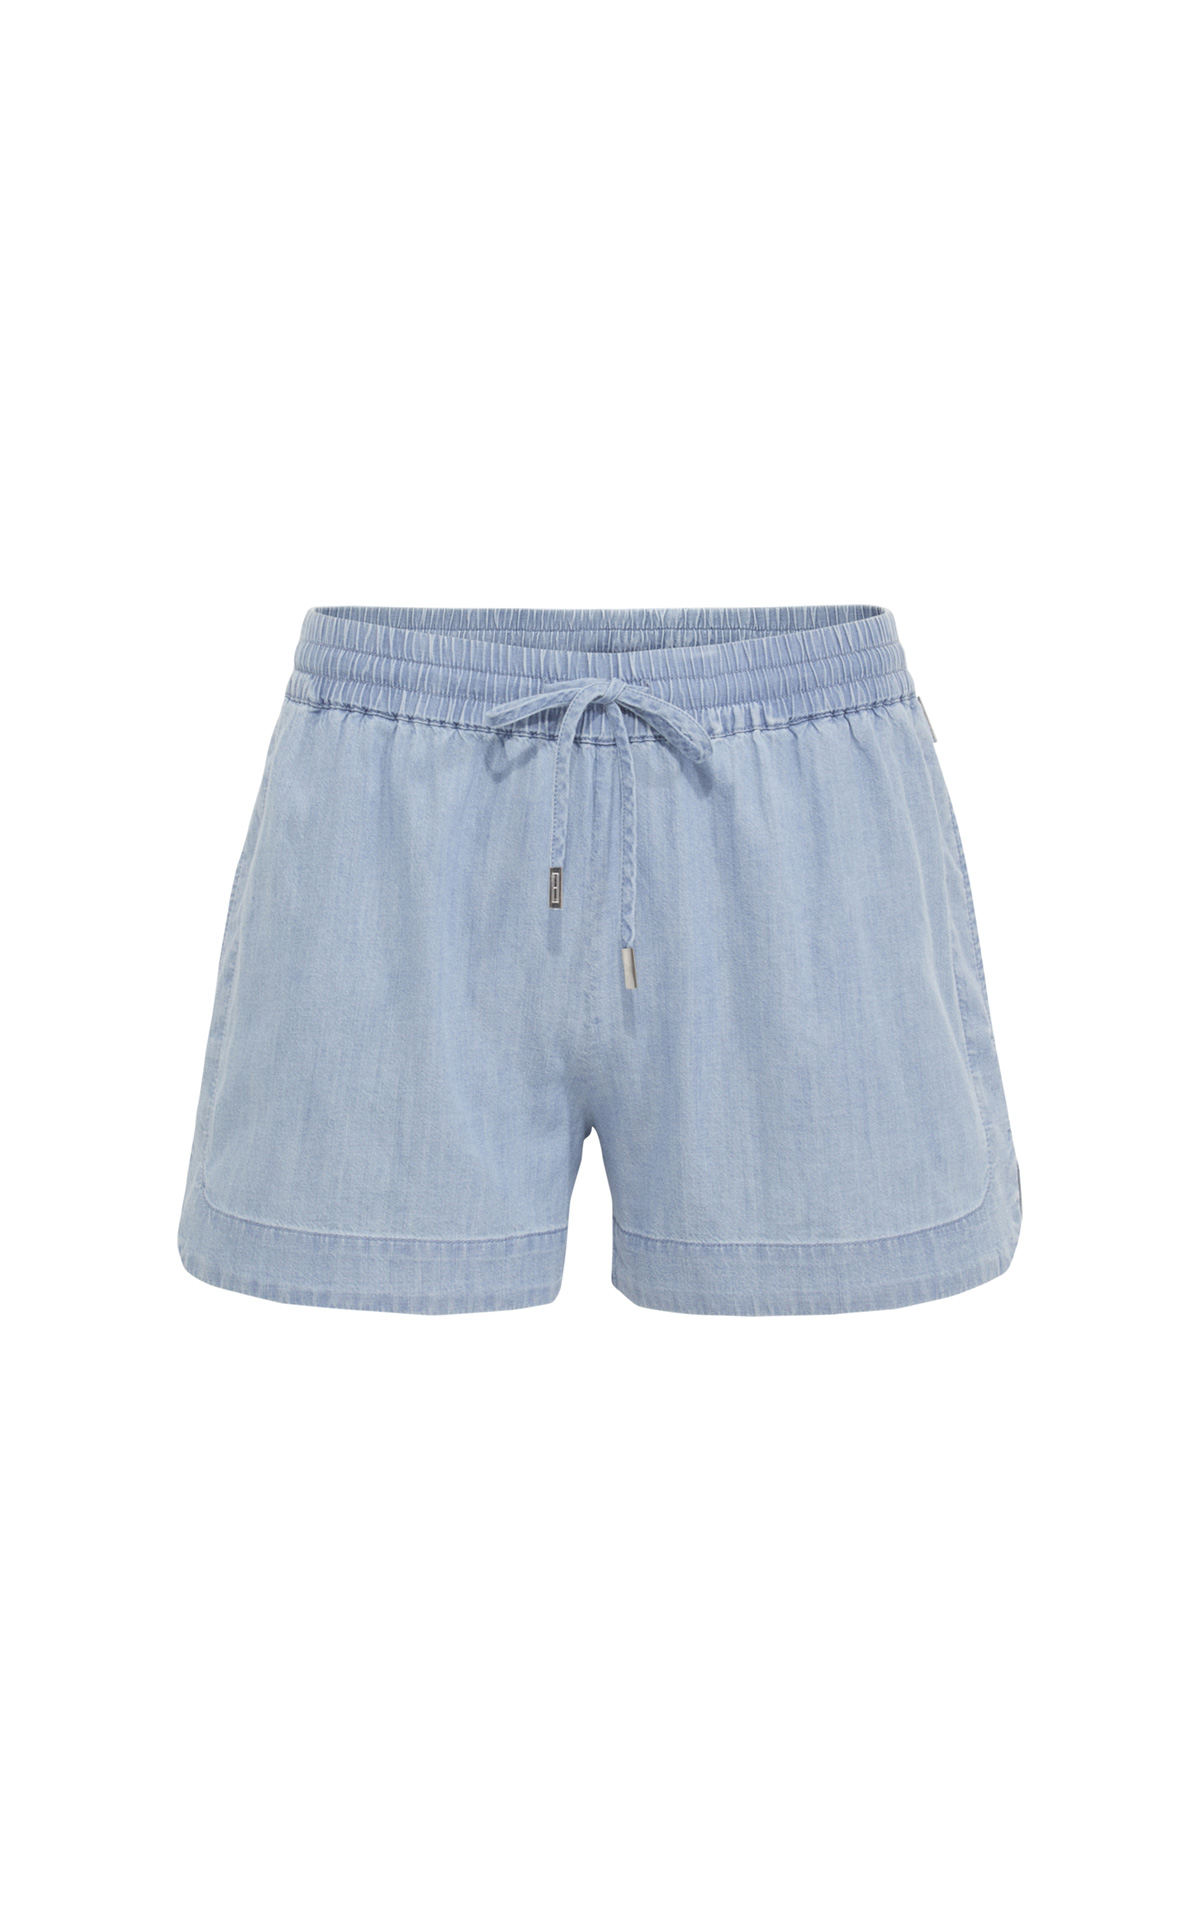 Tommy Hilfiger shorts at The Bicester Village Shopping Collection